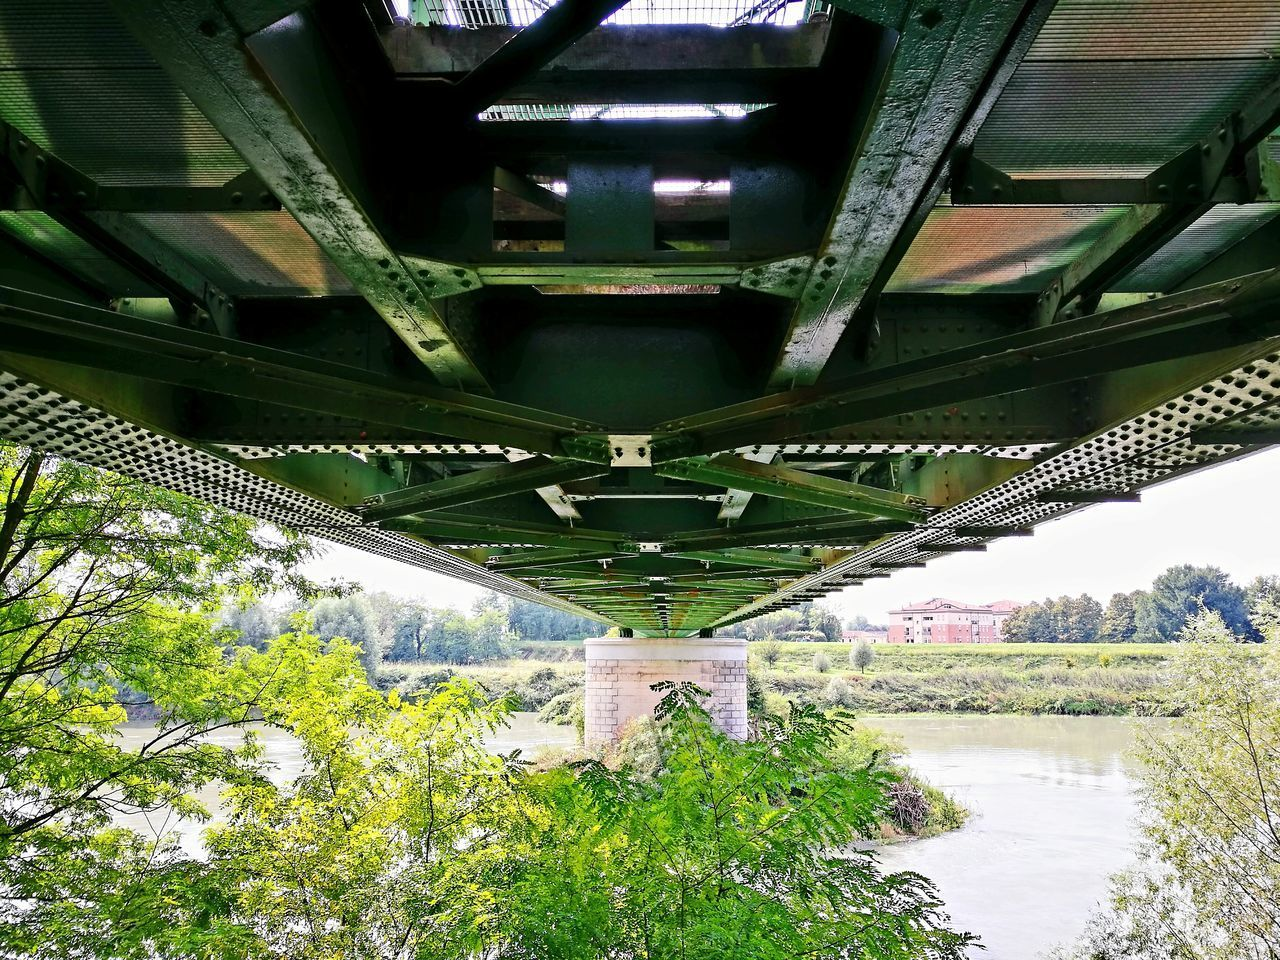 HIGH ANGLE VIEW OF BRIDGE OVER RIVER WITH TREES